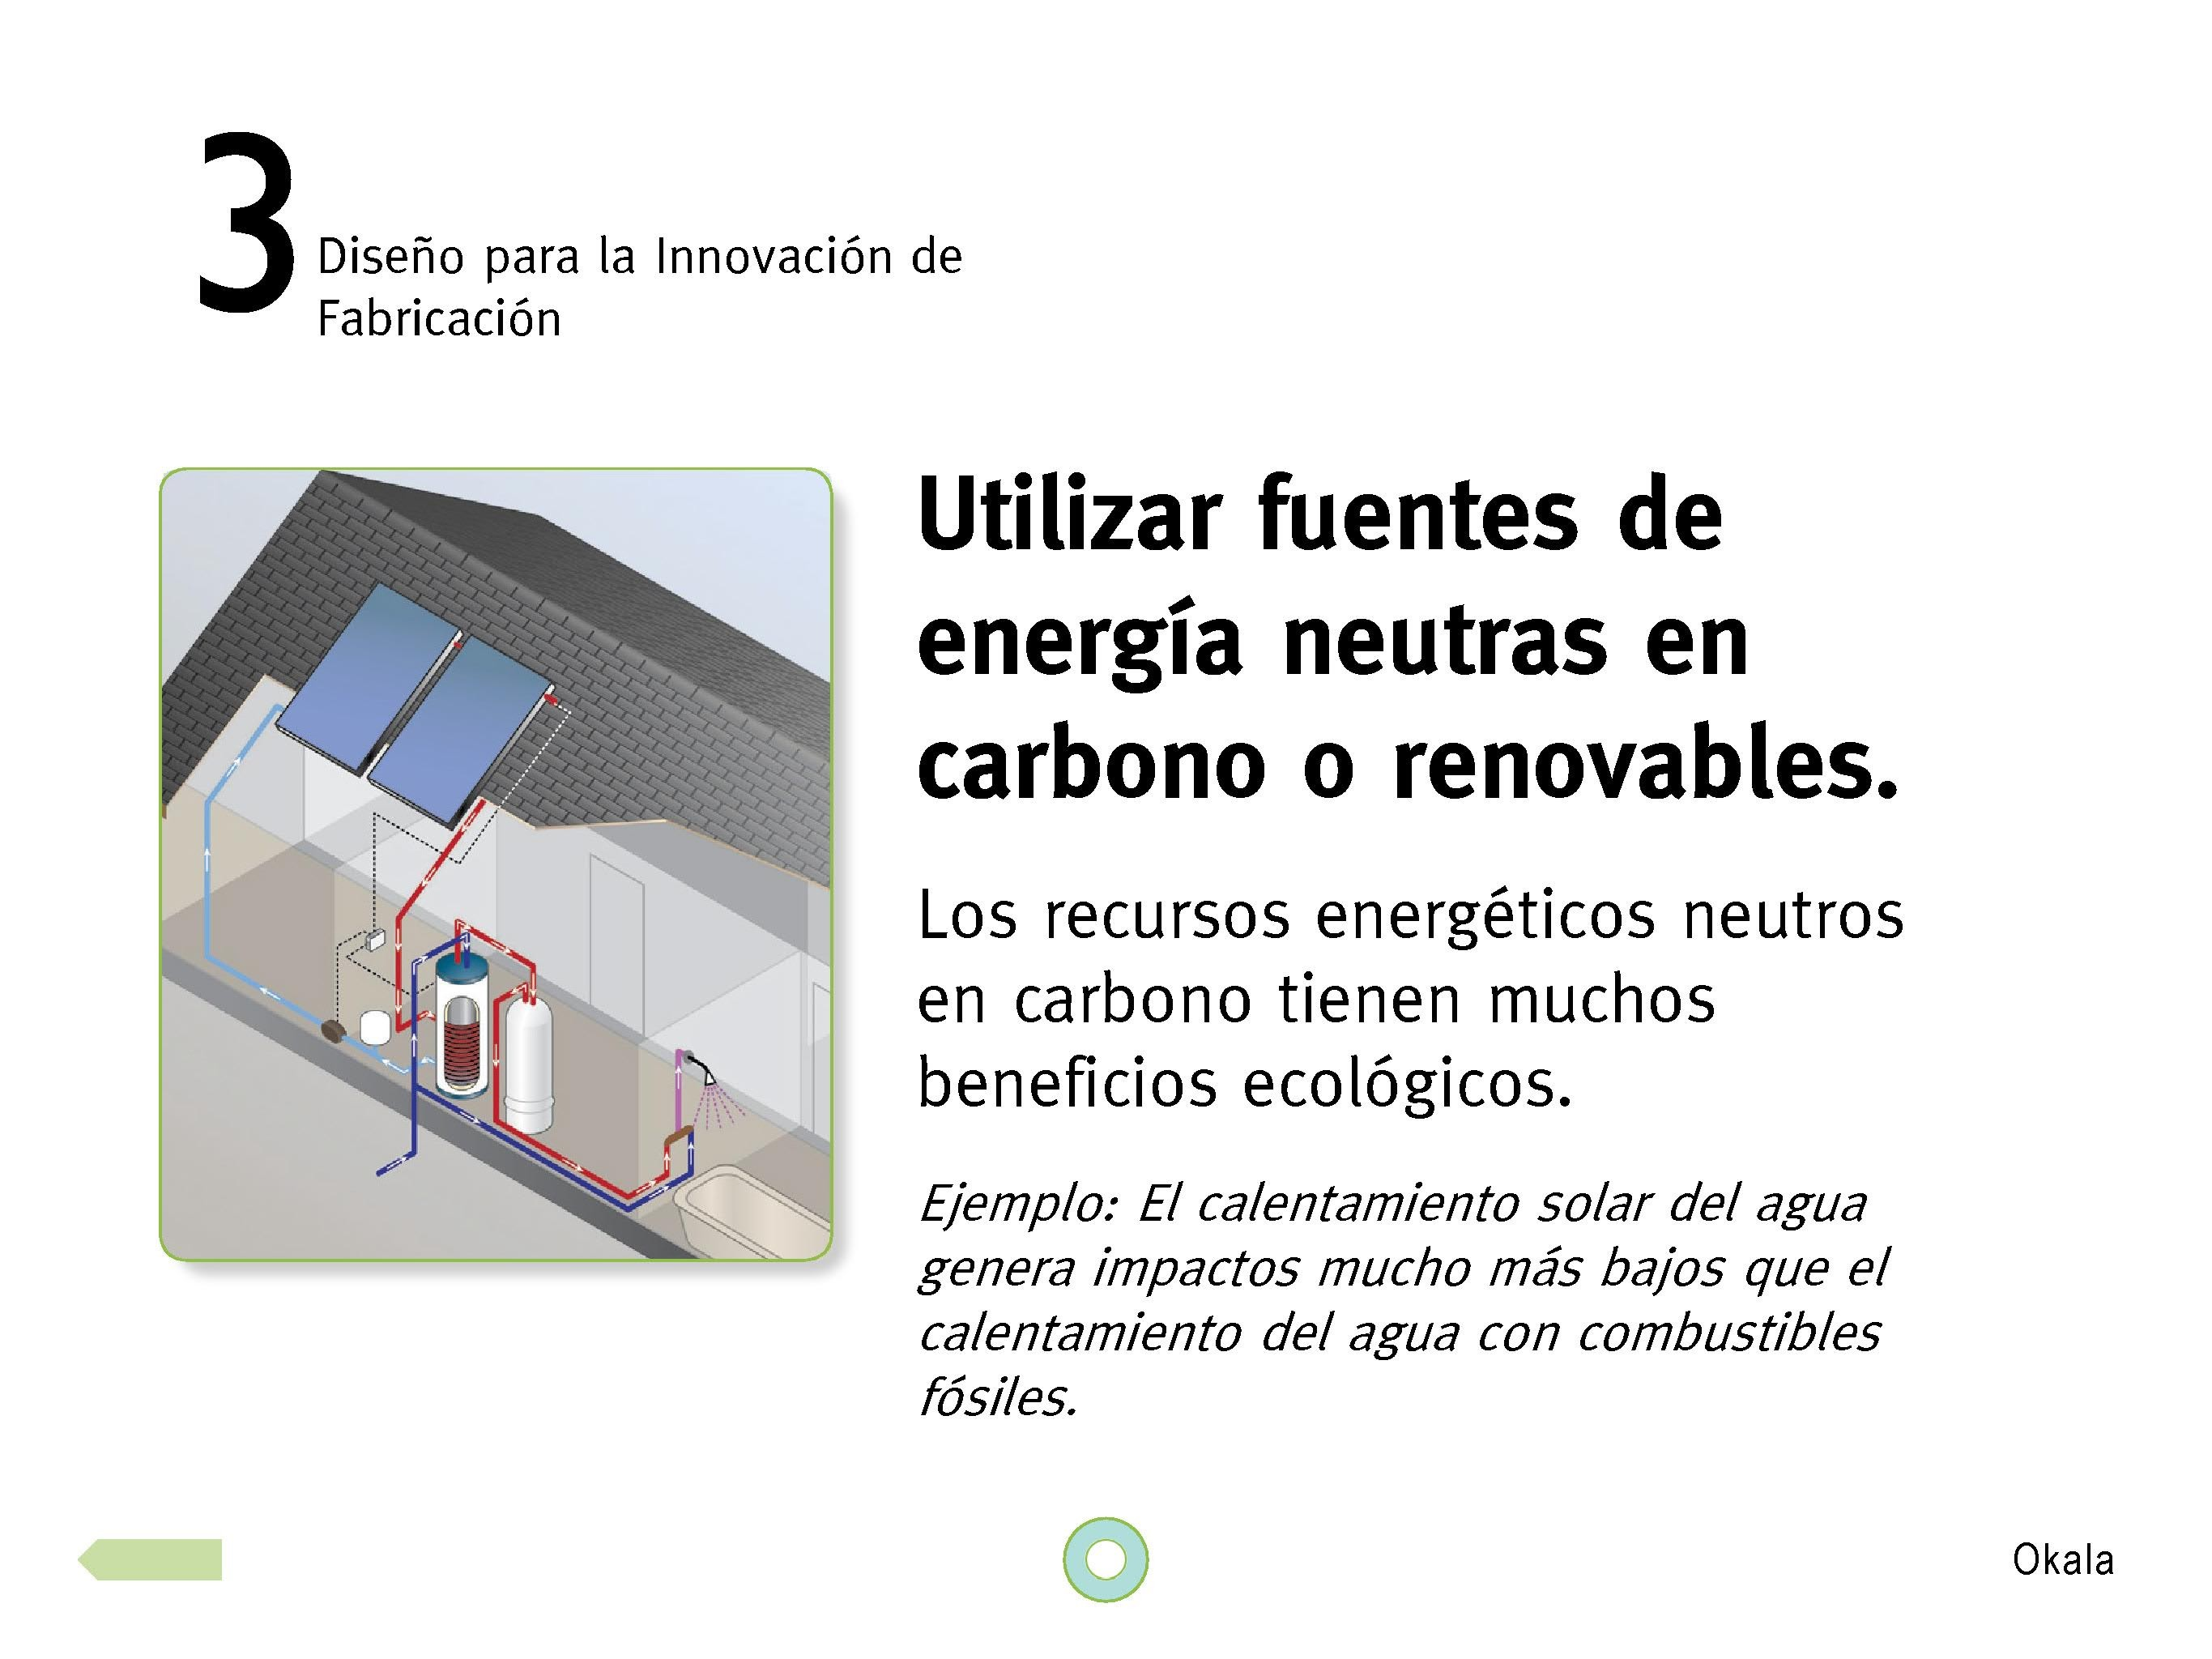 okala-ecodesign-strategy-guide-2012-spanish.new_page_19-1